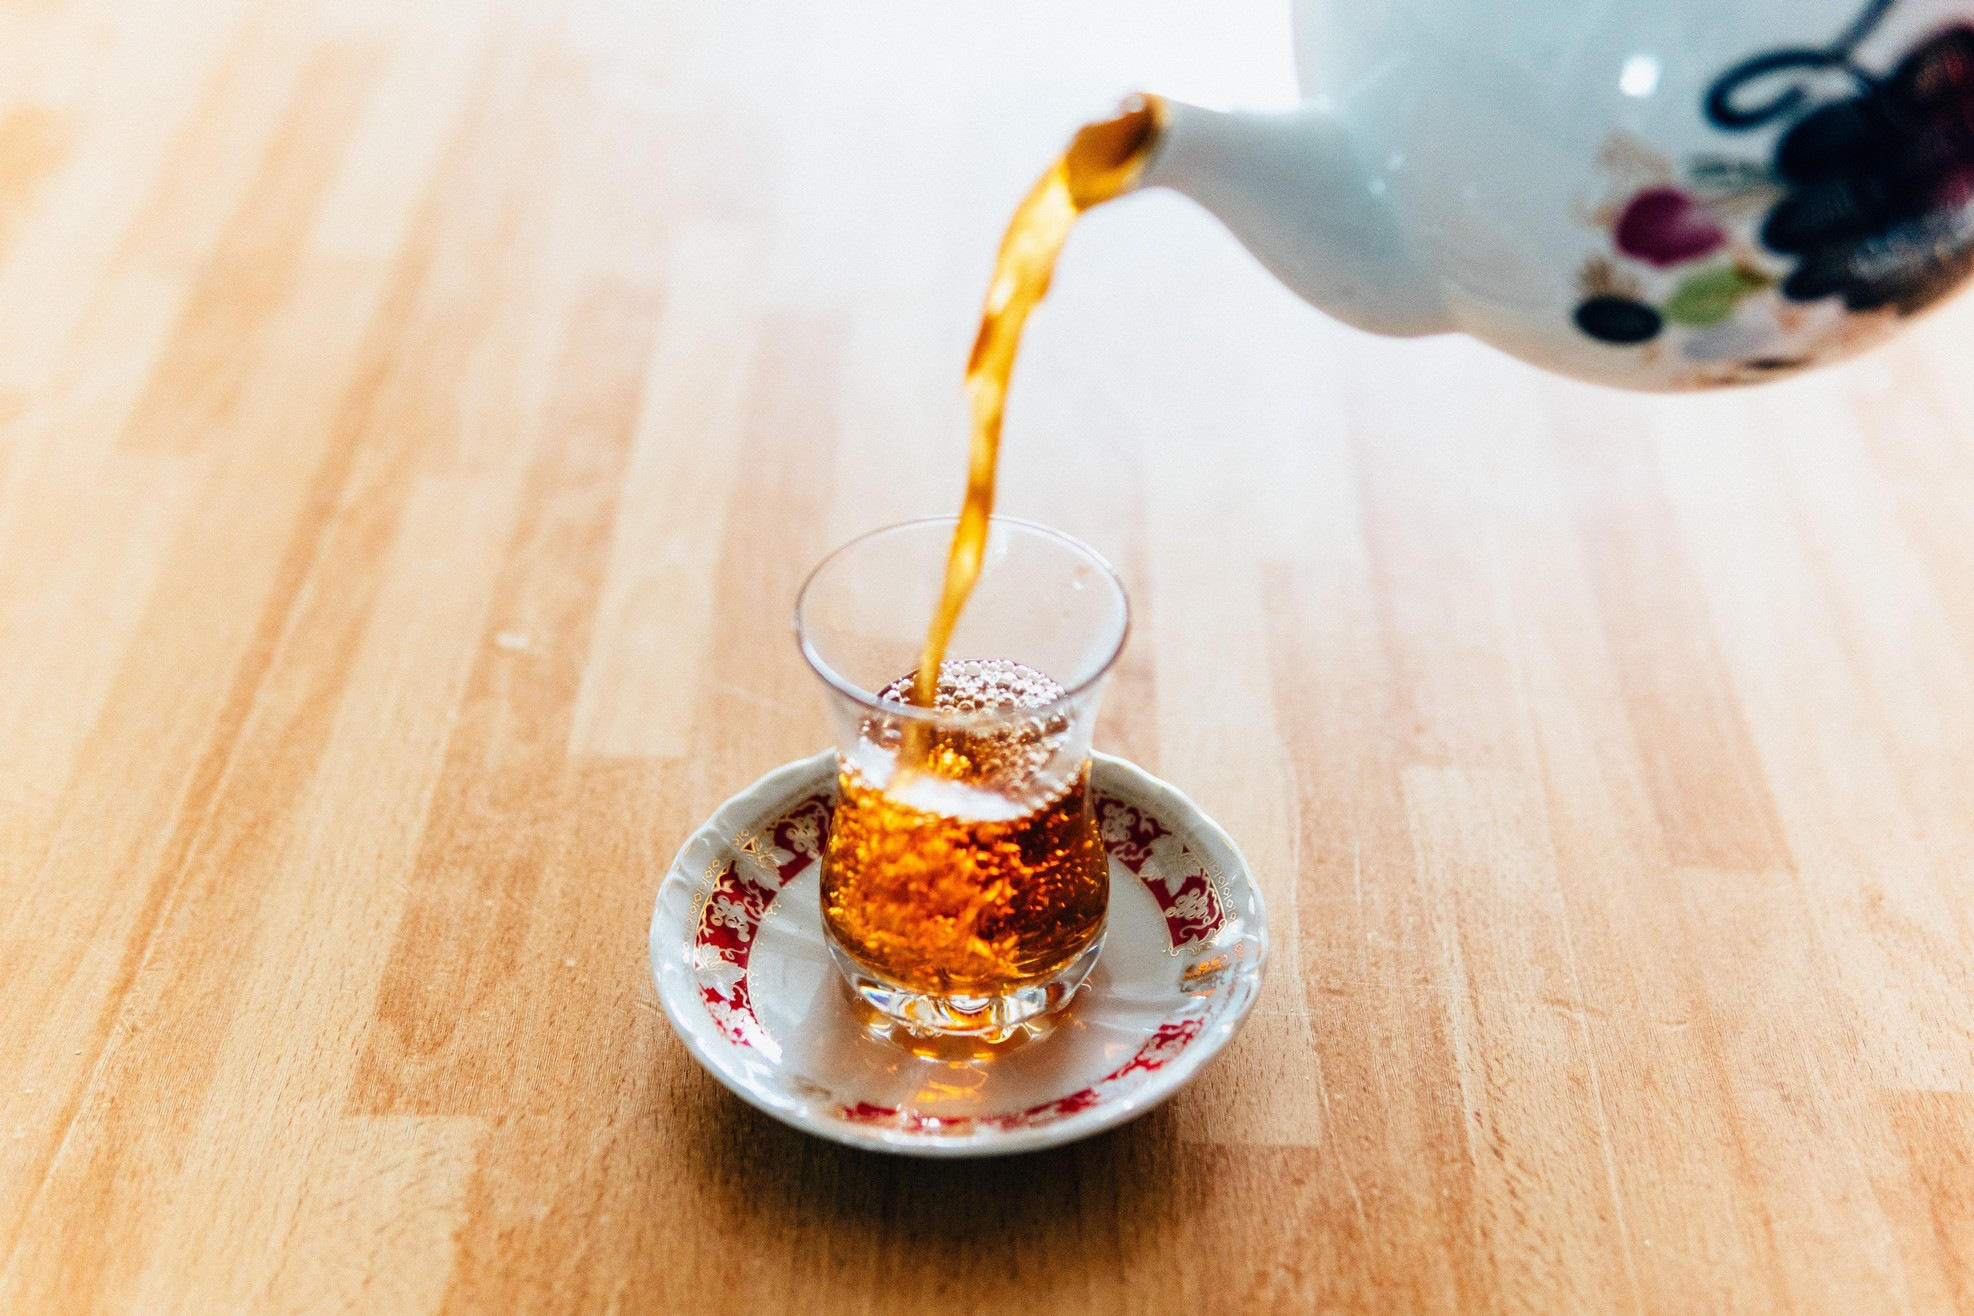 small shot glass being filled from teapot with dark liquid.